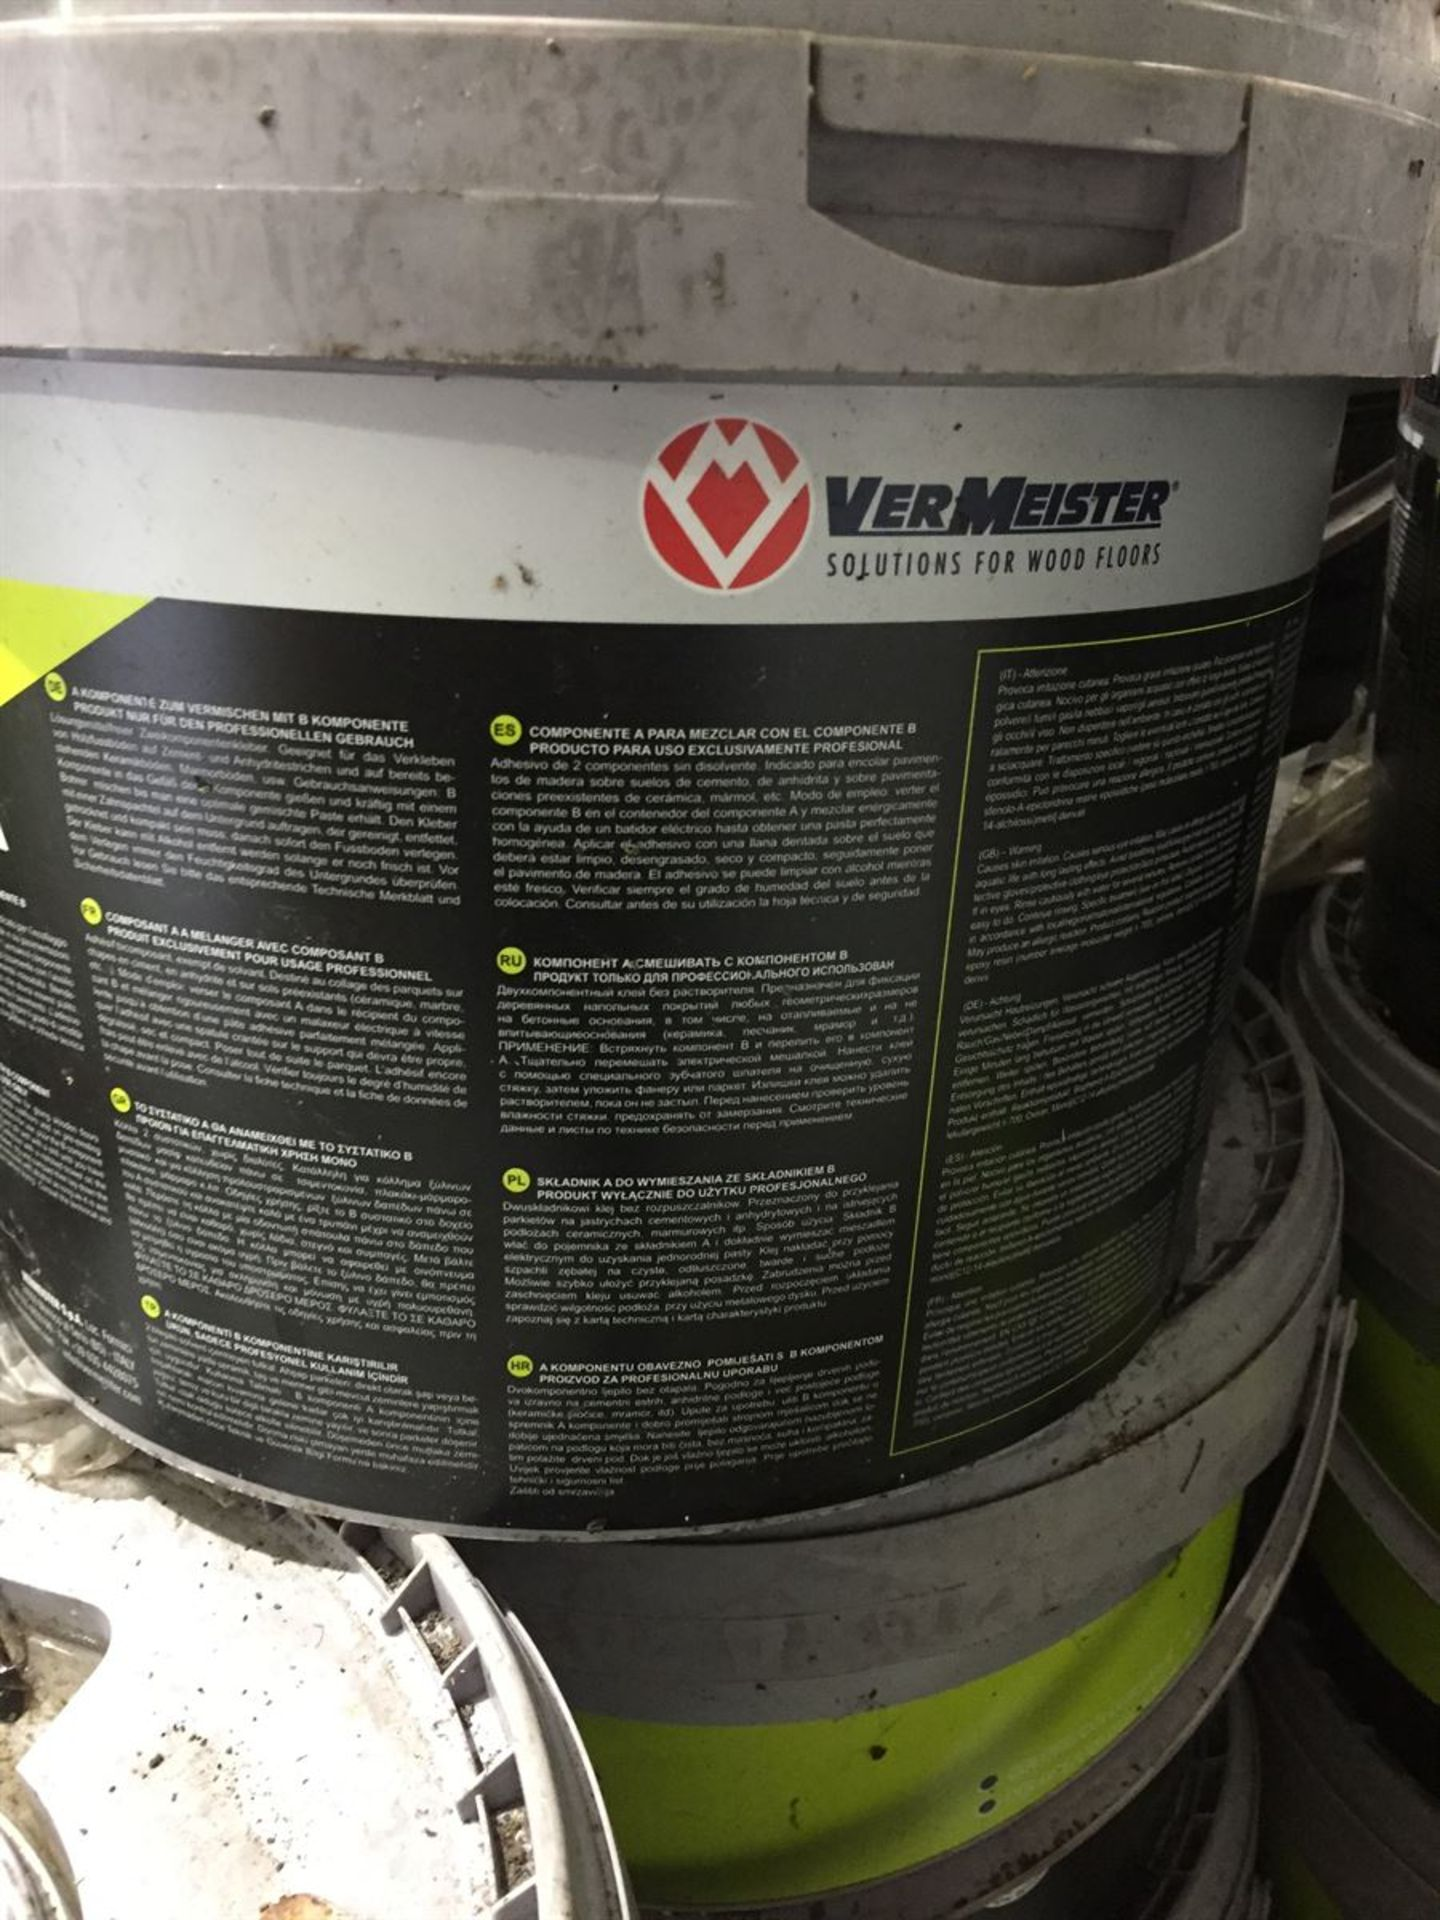 1x 10kg Tub VerMeister 2pak Wood flooring Adhesive - Image 4 of 5